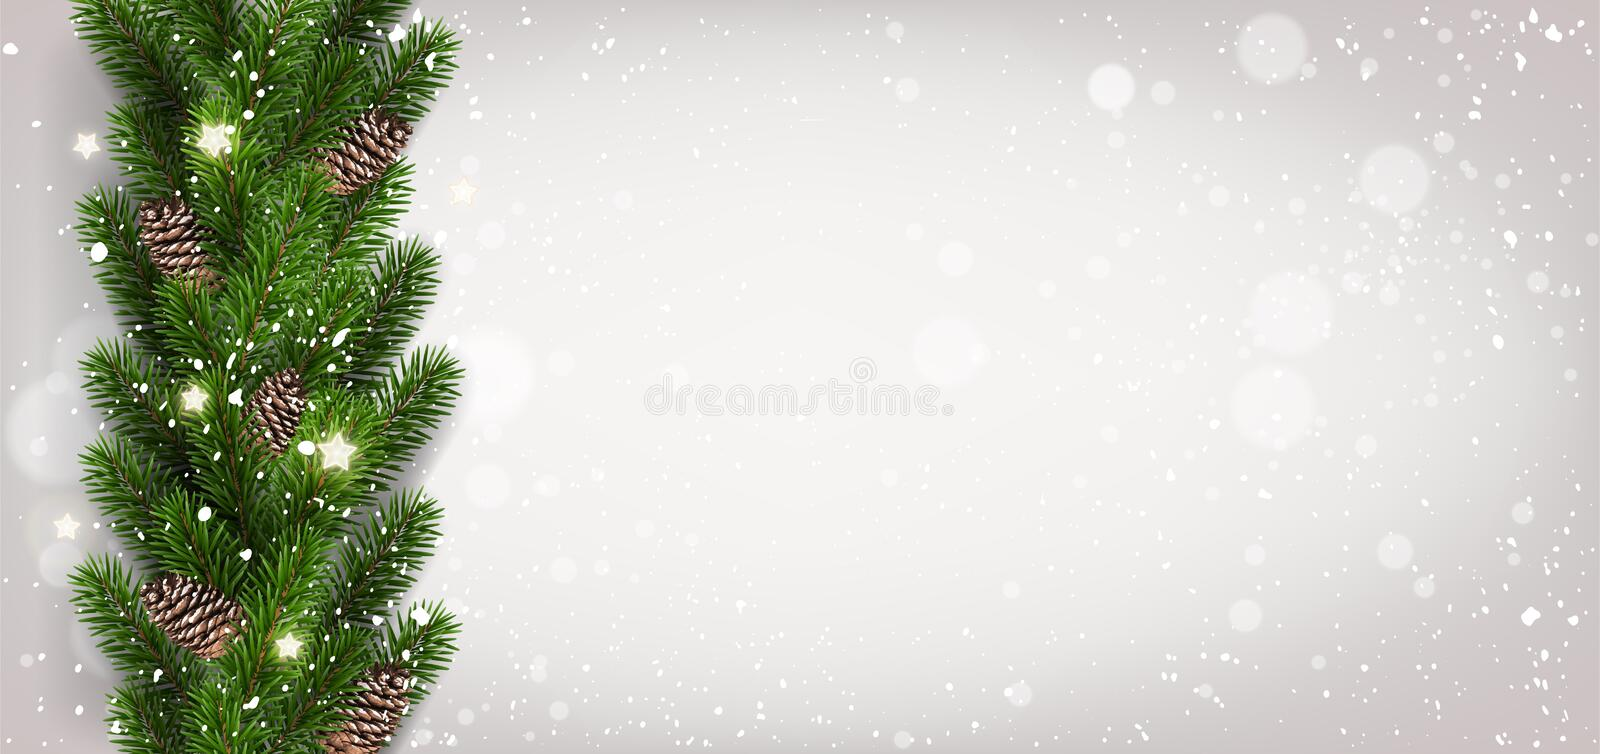 Christmas light background with garland of Christmas tree branches, snowflakes, stars. Xmas and New Year card. Vector vector illustration